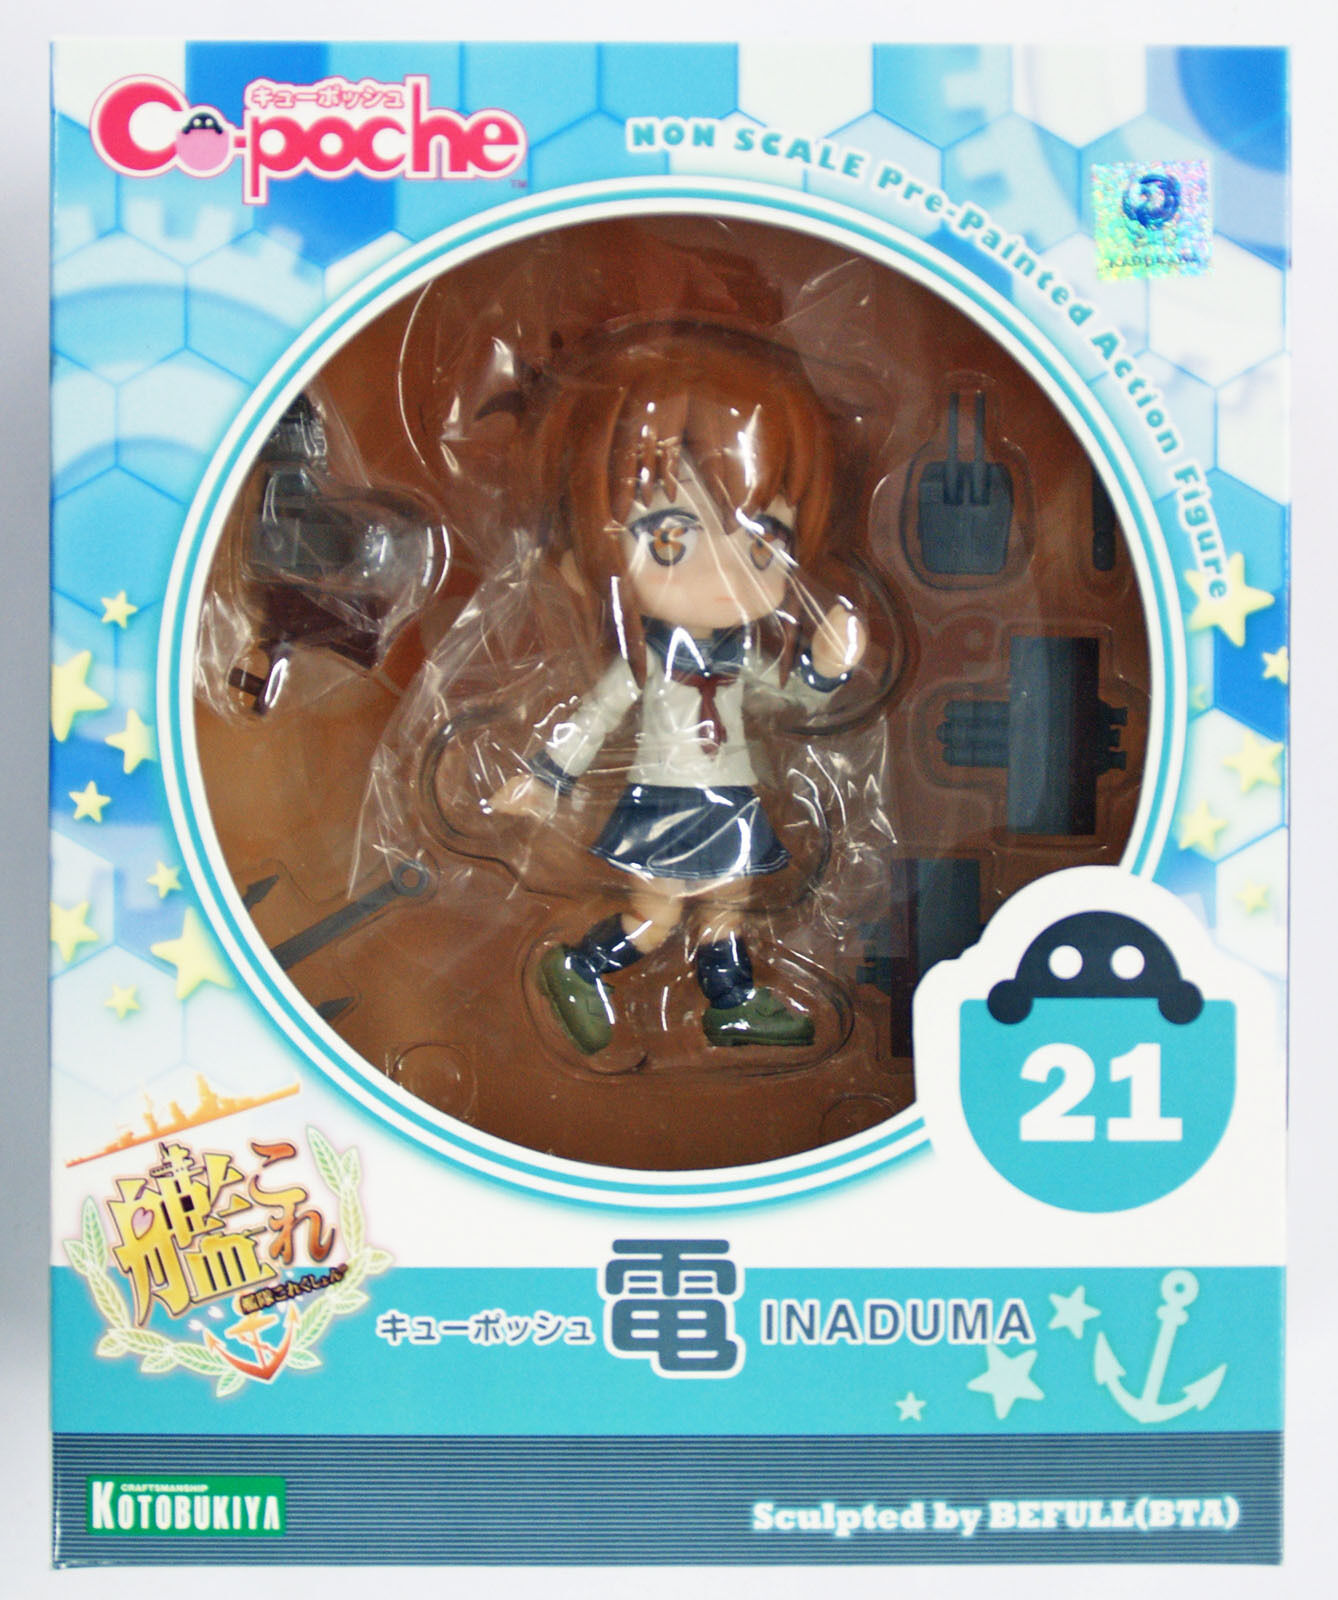 Kotobukiya AD021 Cu-poche Kantai Collection Inazuma 4934054183296